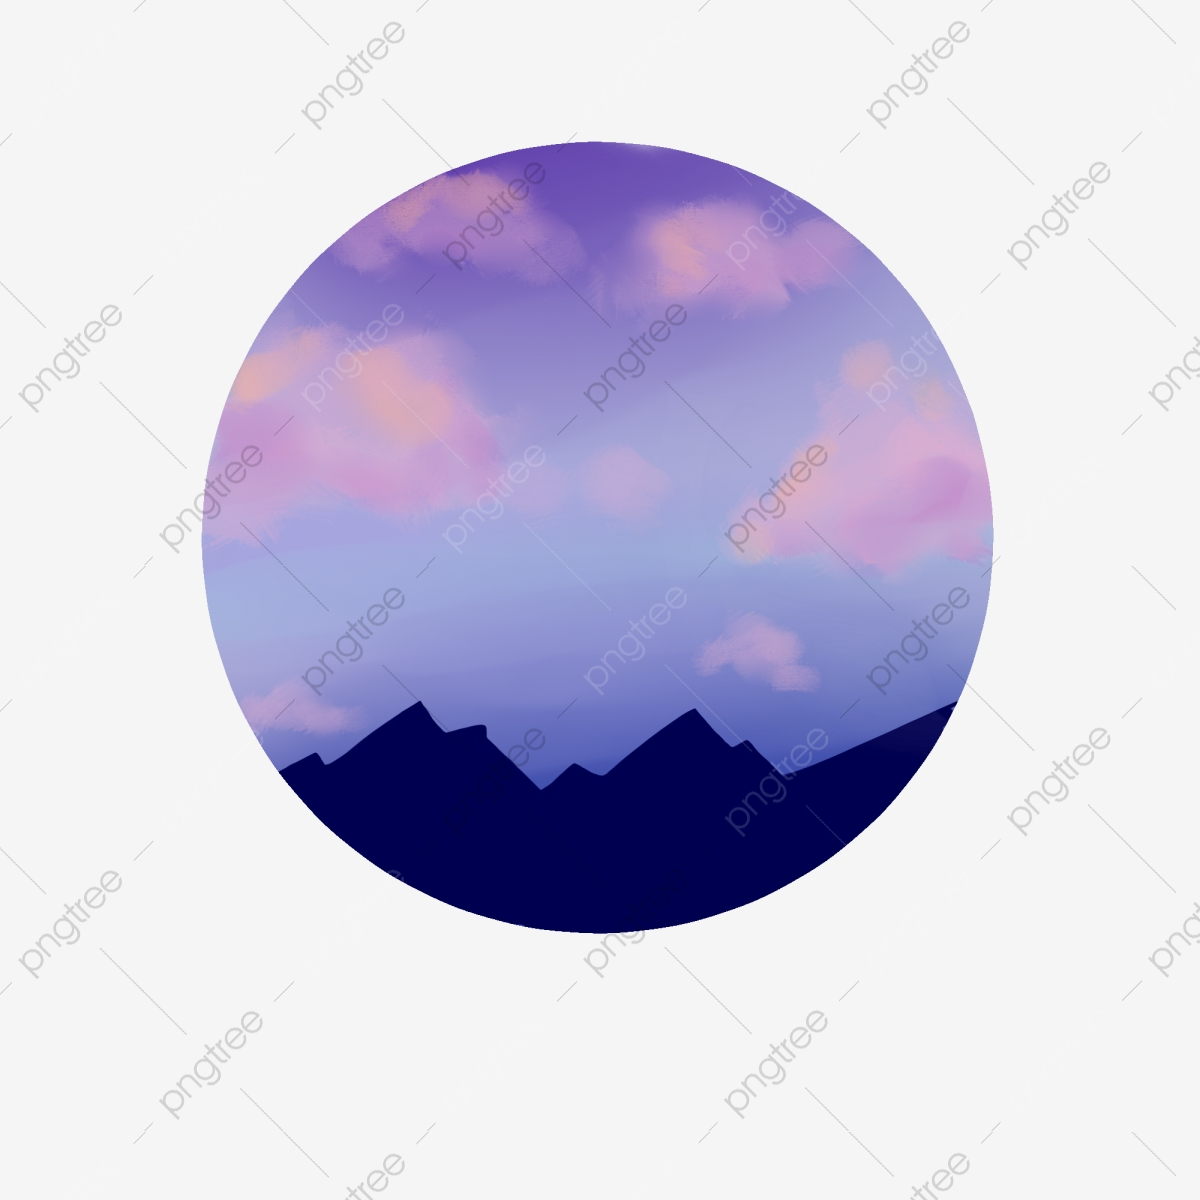 dusk beautiful sunset glow pink clouds small scene cloud mountain png transparent clipart image and psd file for free download https pngtree com freepng dusk beautiful sunset glow pink clouds 3859103 html